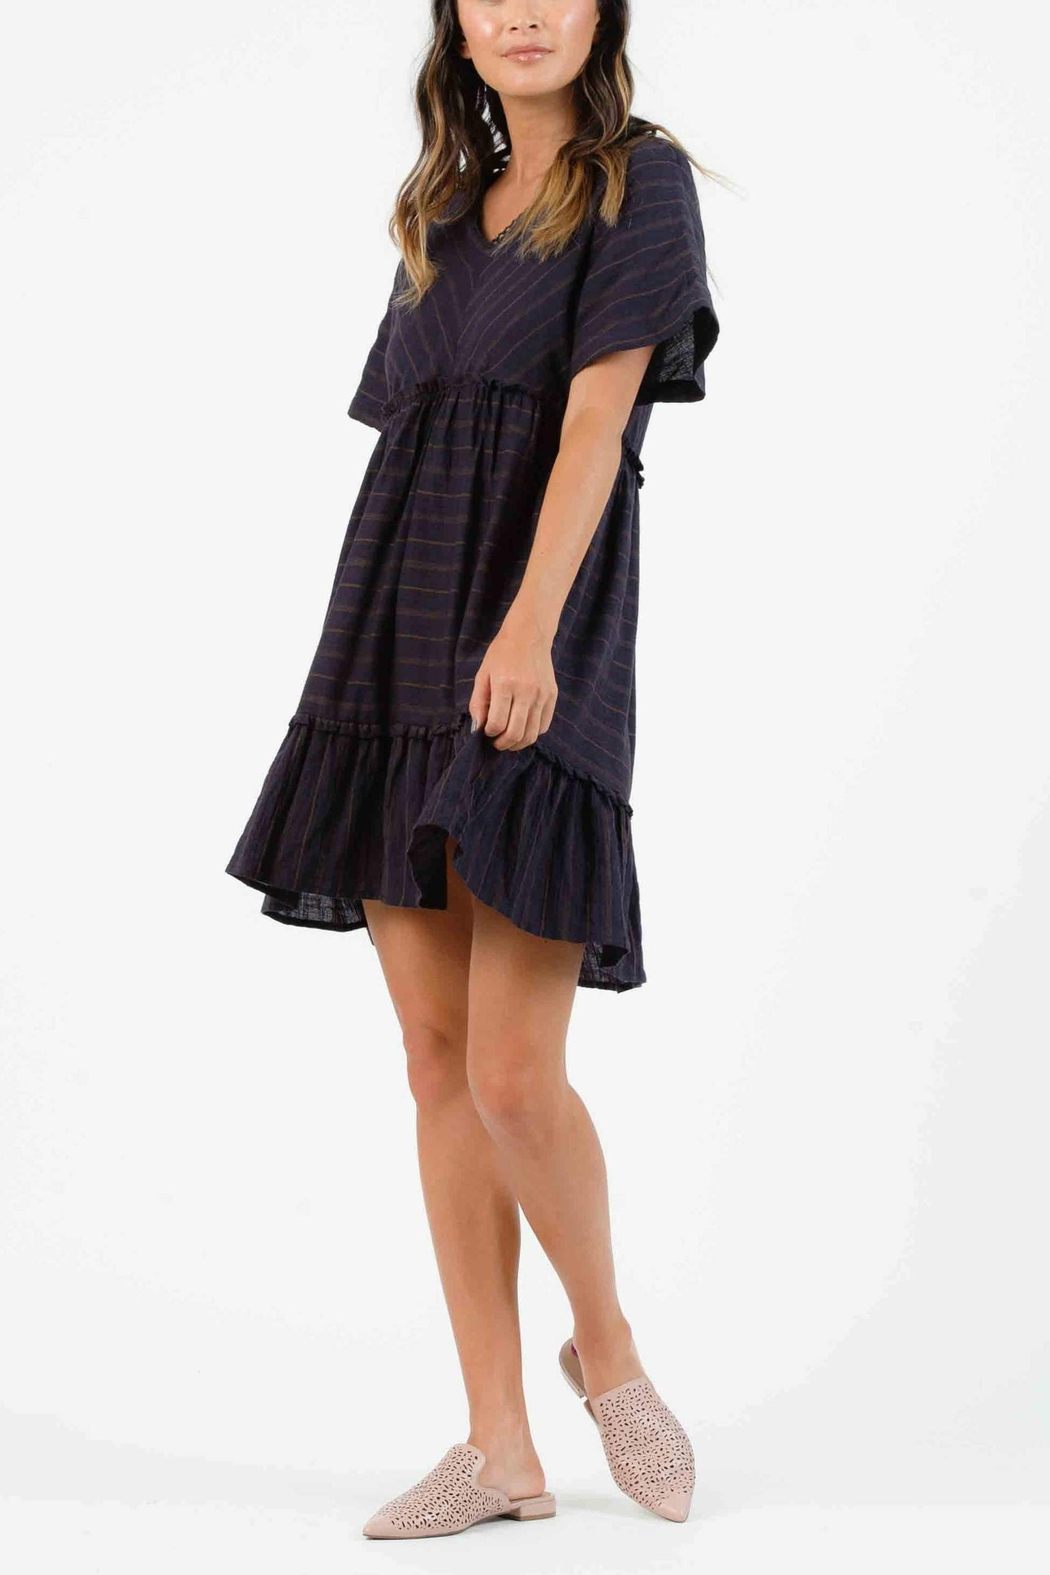 Lucca Shore Baby Doll Dress - Main Image